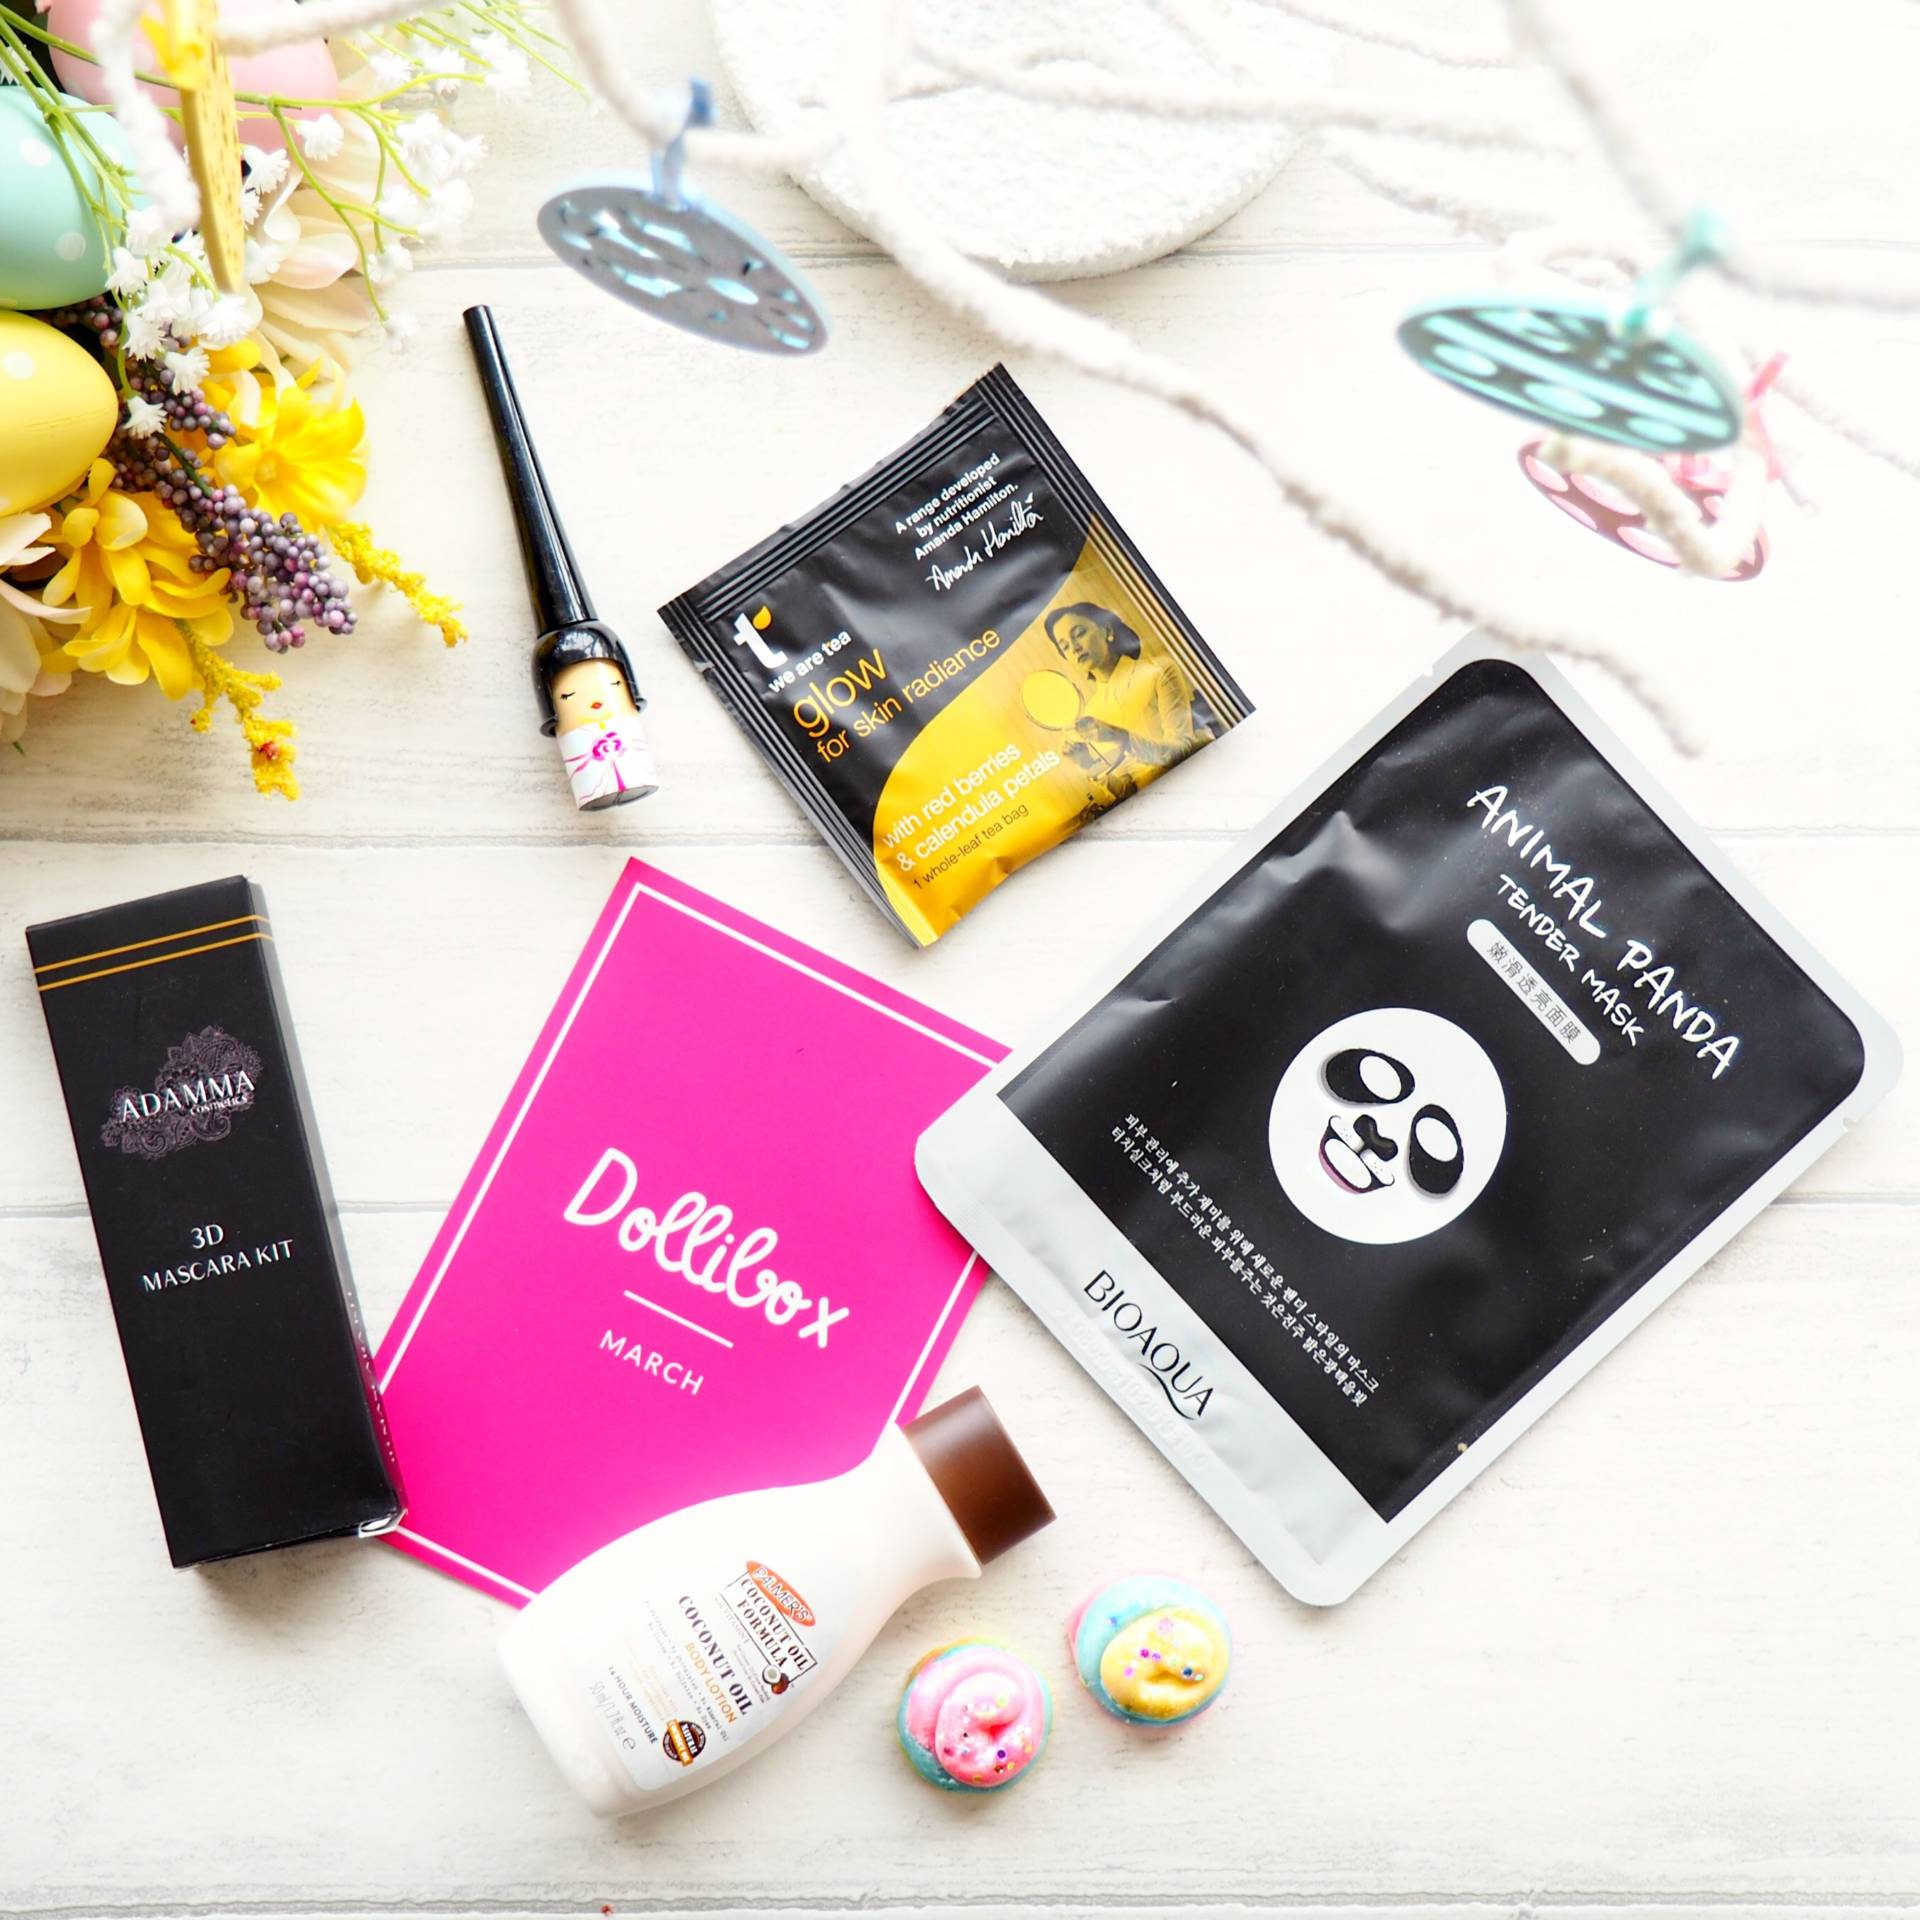 Dollibox March 2017 Review